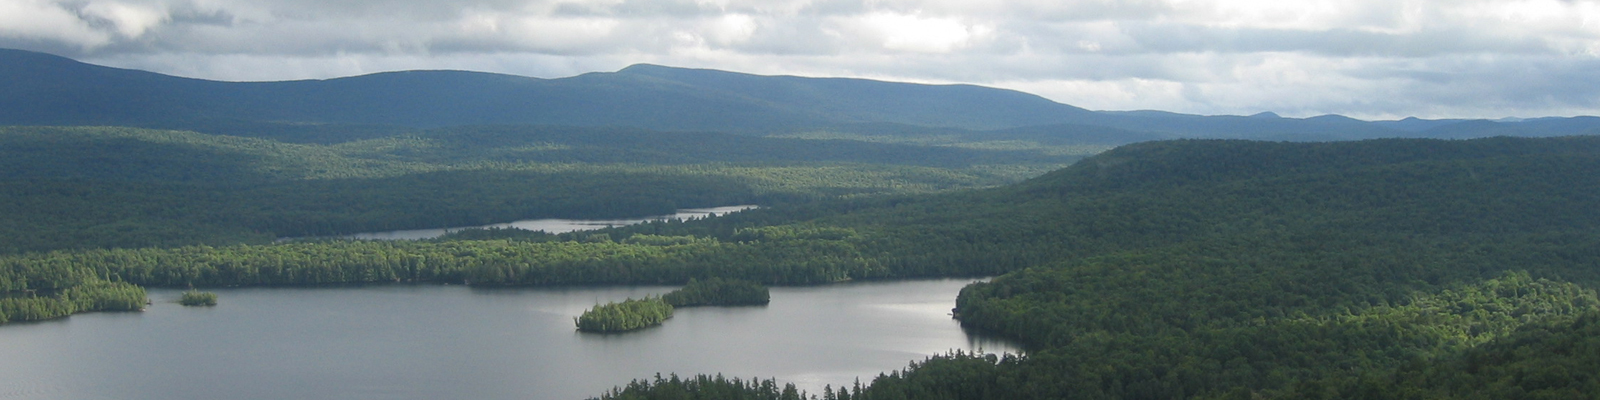 View of Blue Mountain Lake from atop Castle Rock